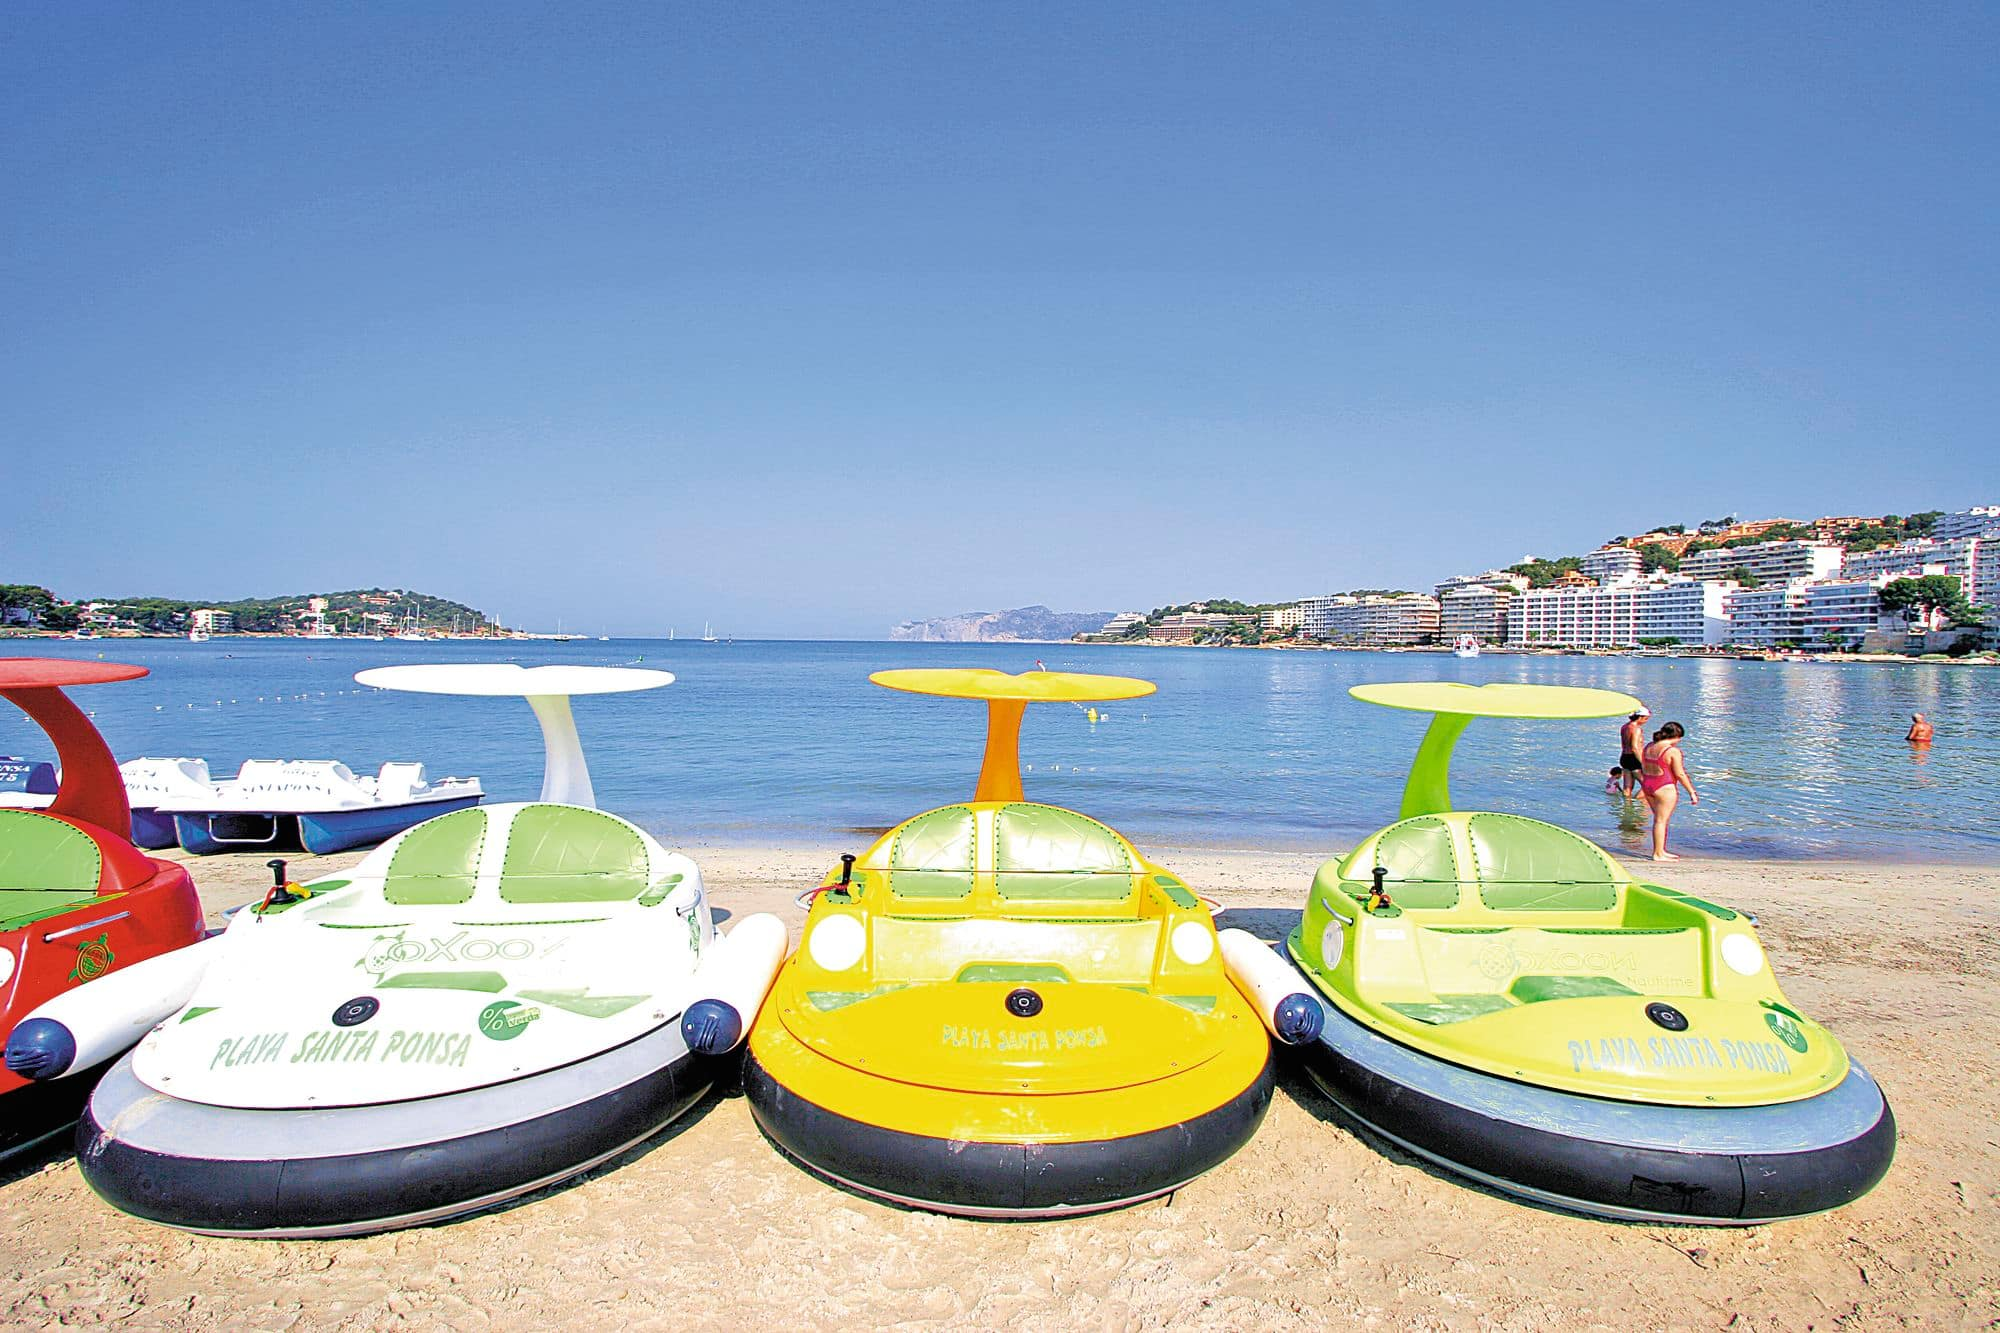 Try a new watersport on Playa Santa Ponsa Falcon now TUI Holiday